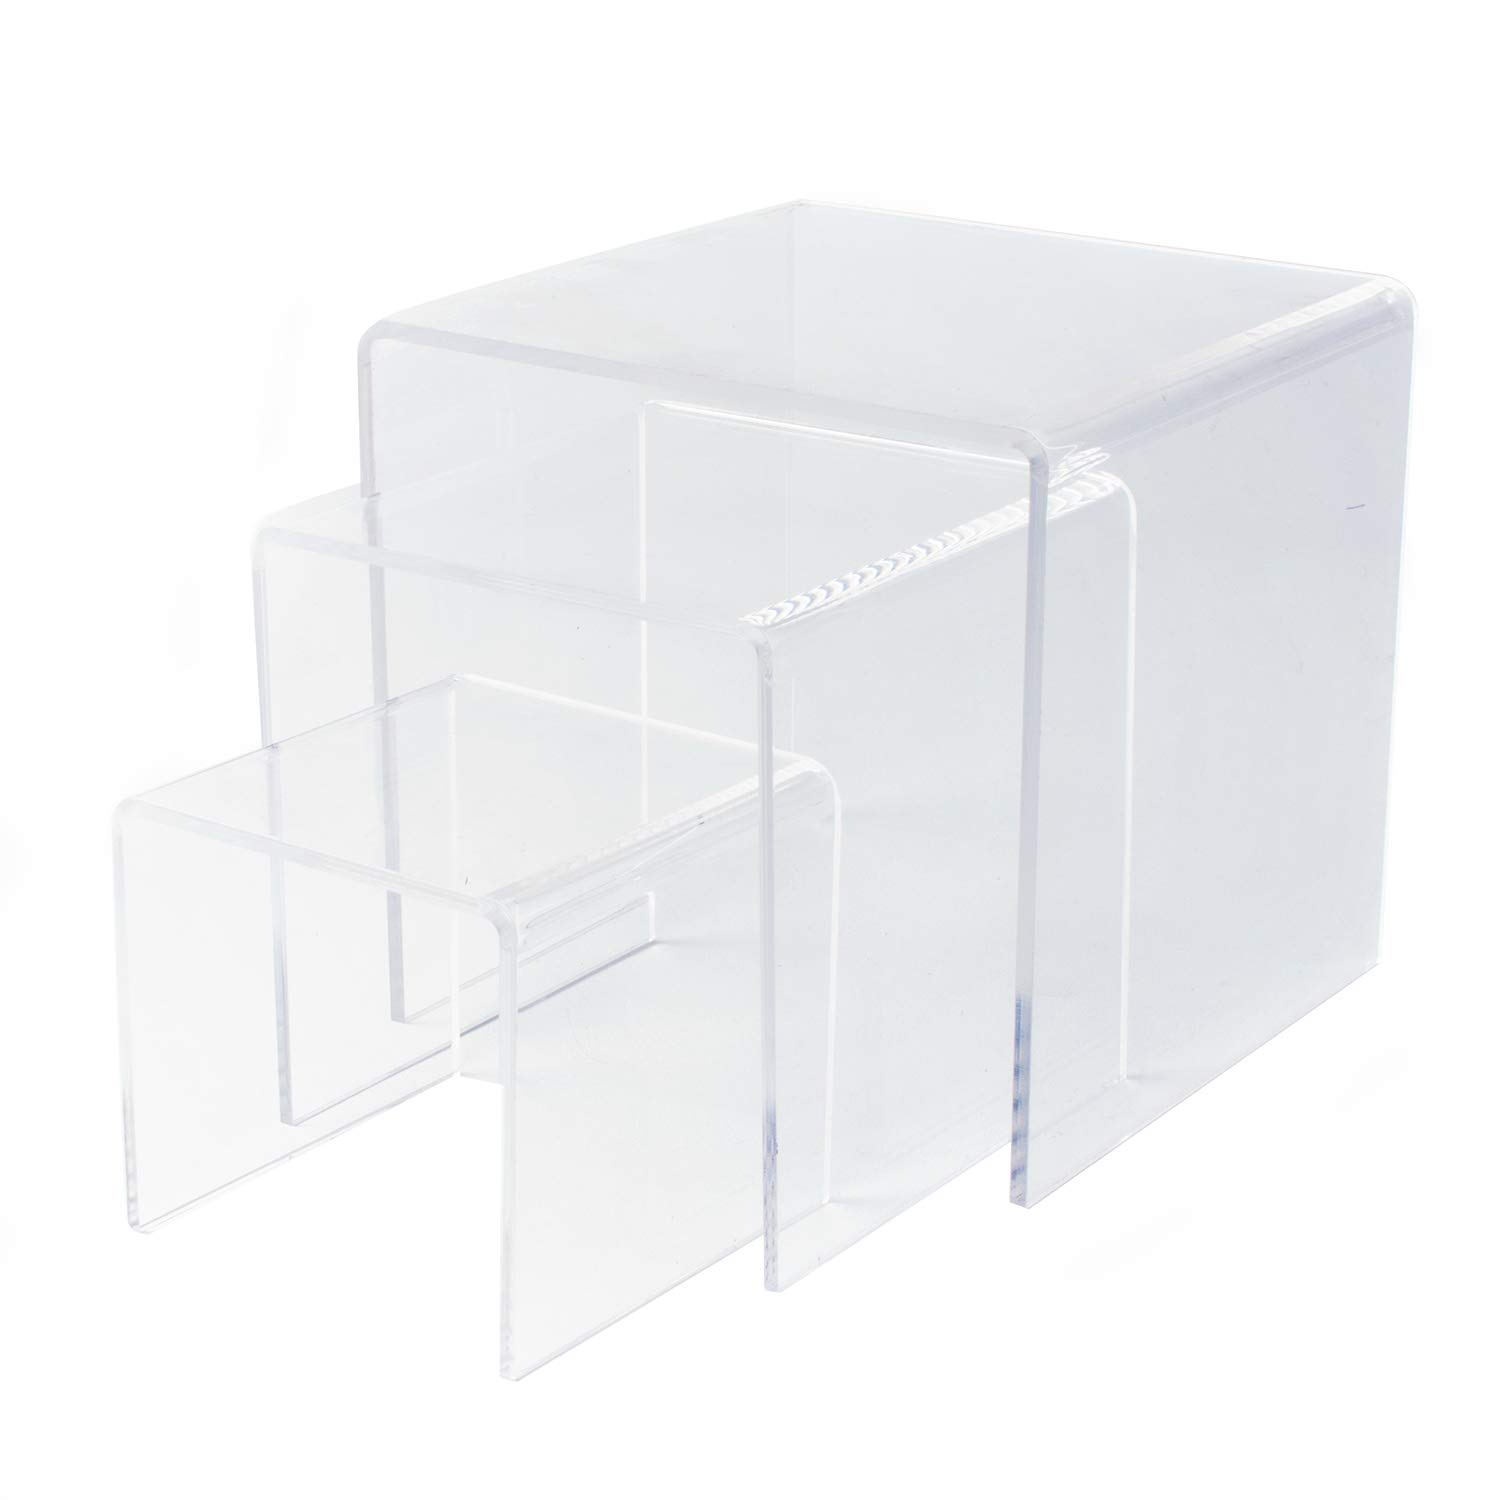 Clear Acrylic Riser Set of Three (3-Inch, 4-Inch, 5-Inch) by Super Z Outlet (2)